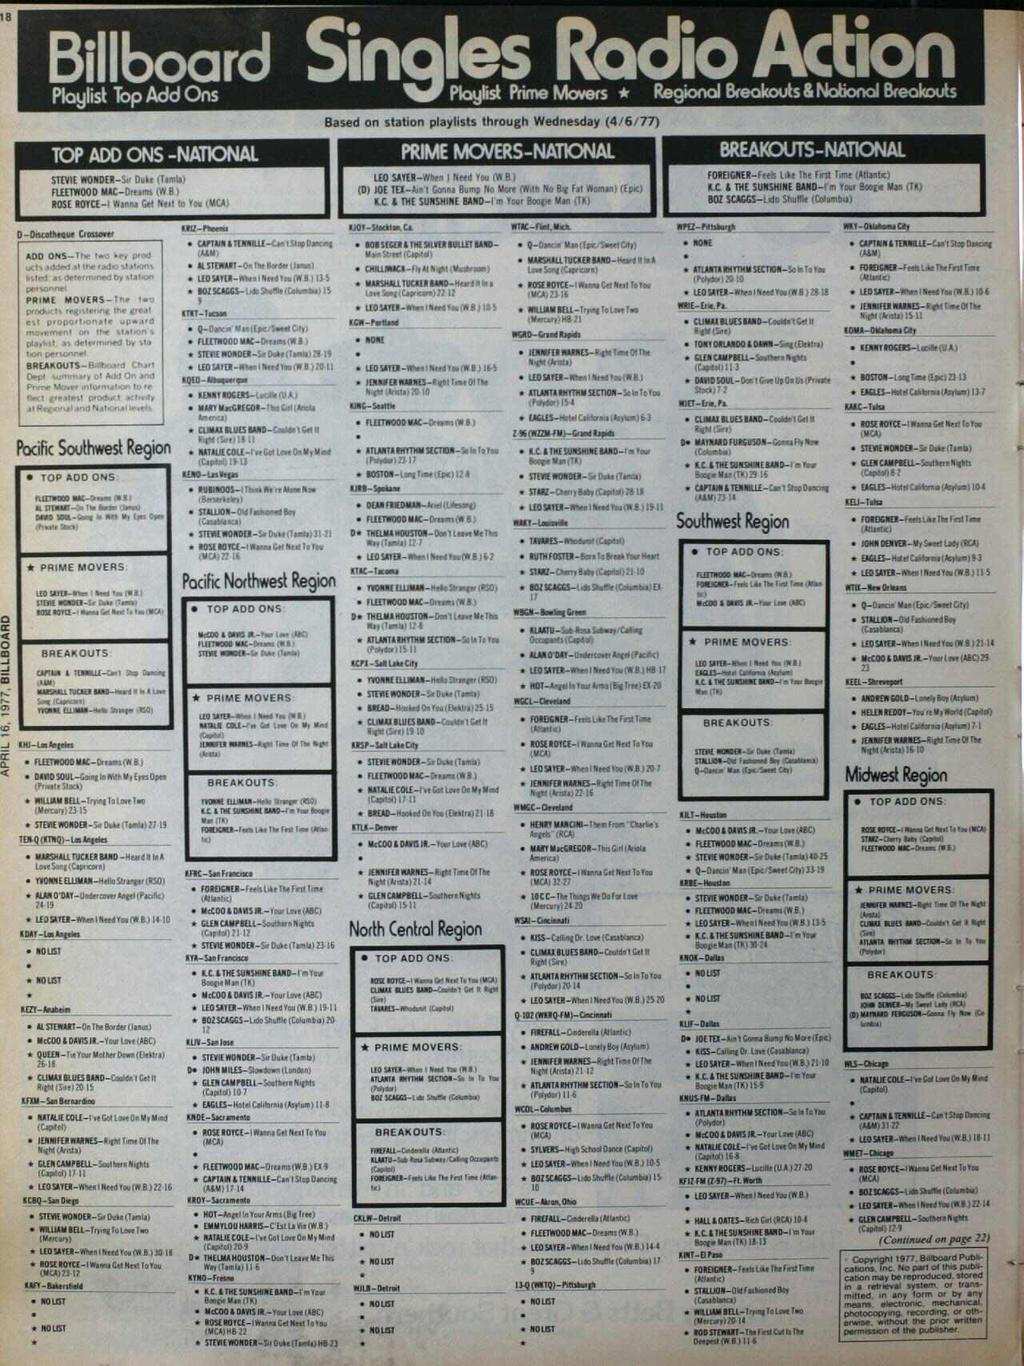 M Billboard Sin9les Rodio Action Ploylist Top Add Ons Ploylist Prime Move * Regionol Breoklouts & Notionoll Breokouts Based on station playlists through Wednesday (4/6/77) TROP ADO ONS -NATONAL STEVE